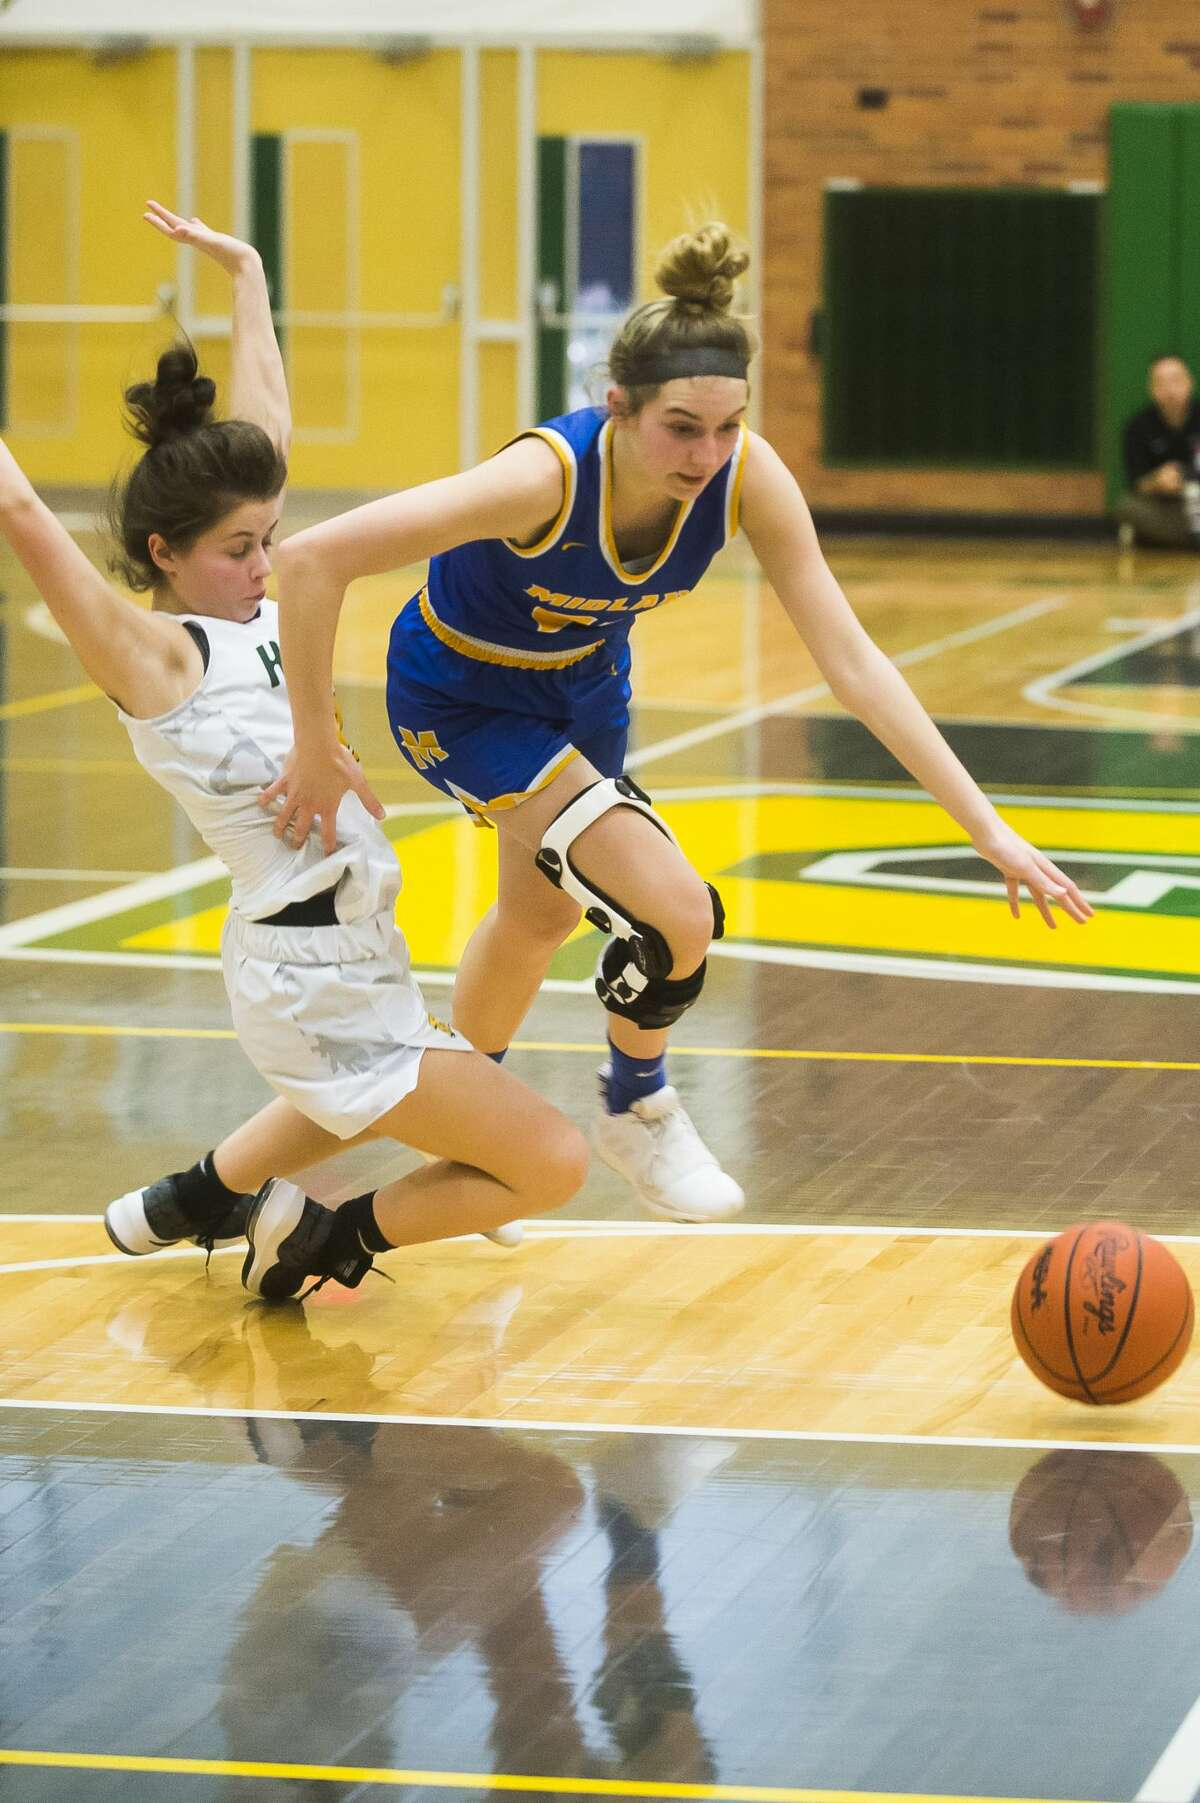 Midland's Anna Tuck dribbles past Dow's Chloe McVey during the Chemics' Division 1 district championship loss to Dow Friday, March 6, 2020 at H. H. Dow High School. (Katy Kildee/kkildee@mdn.net)